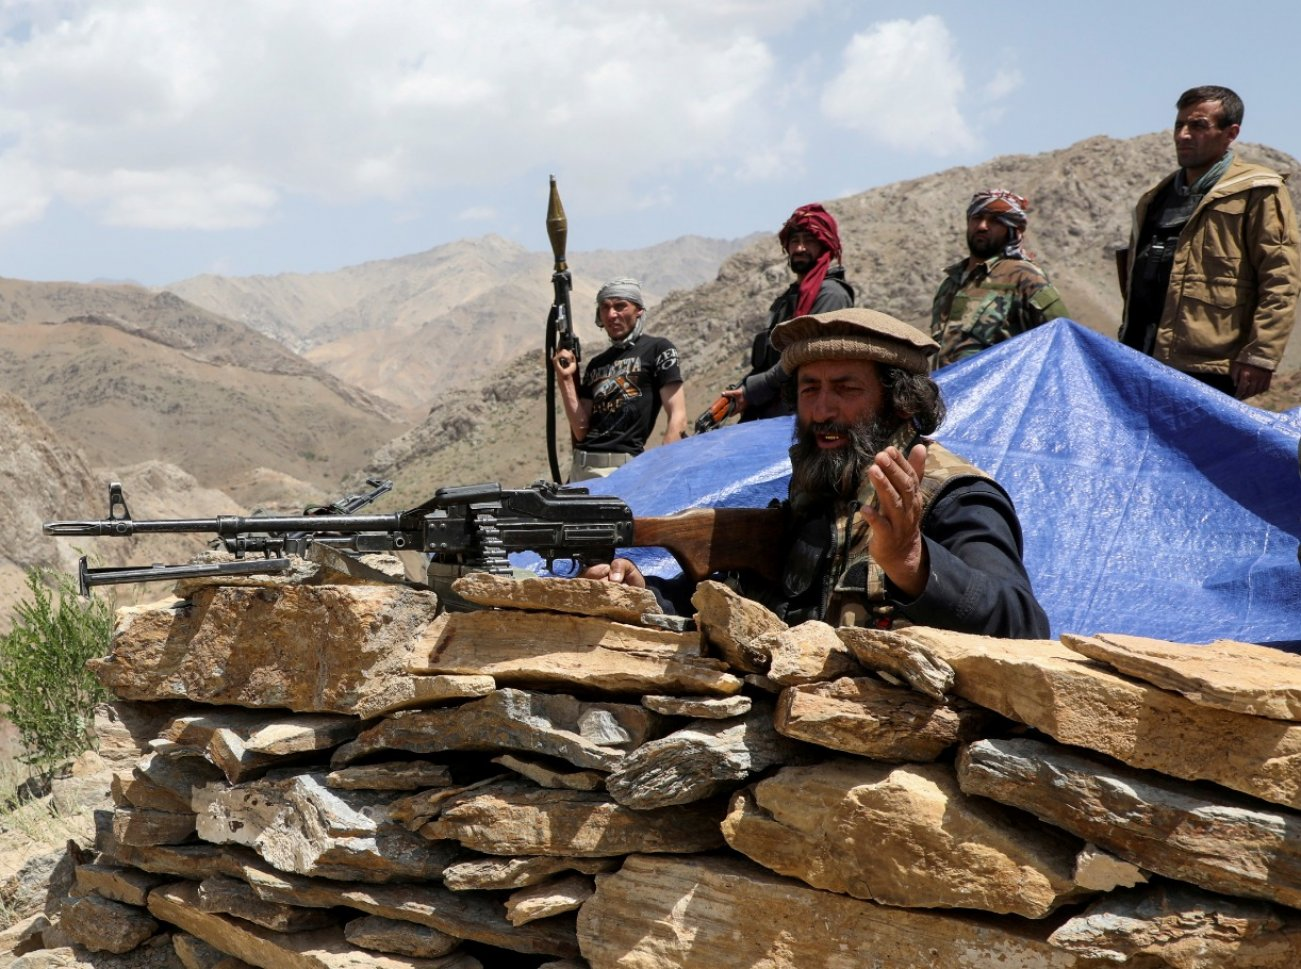 The Taliban Is Taking Over Afghanistan: Here's How to Stop Them